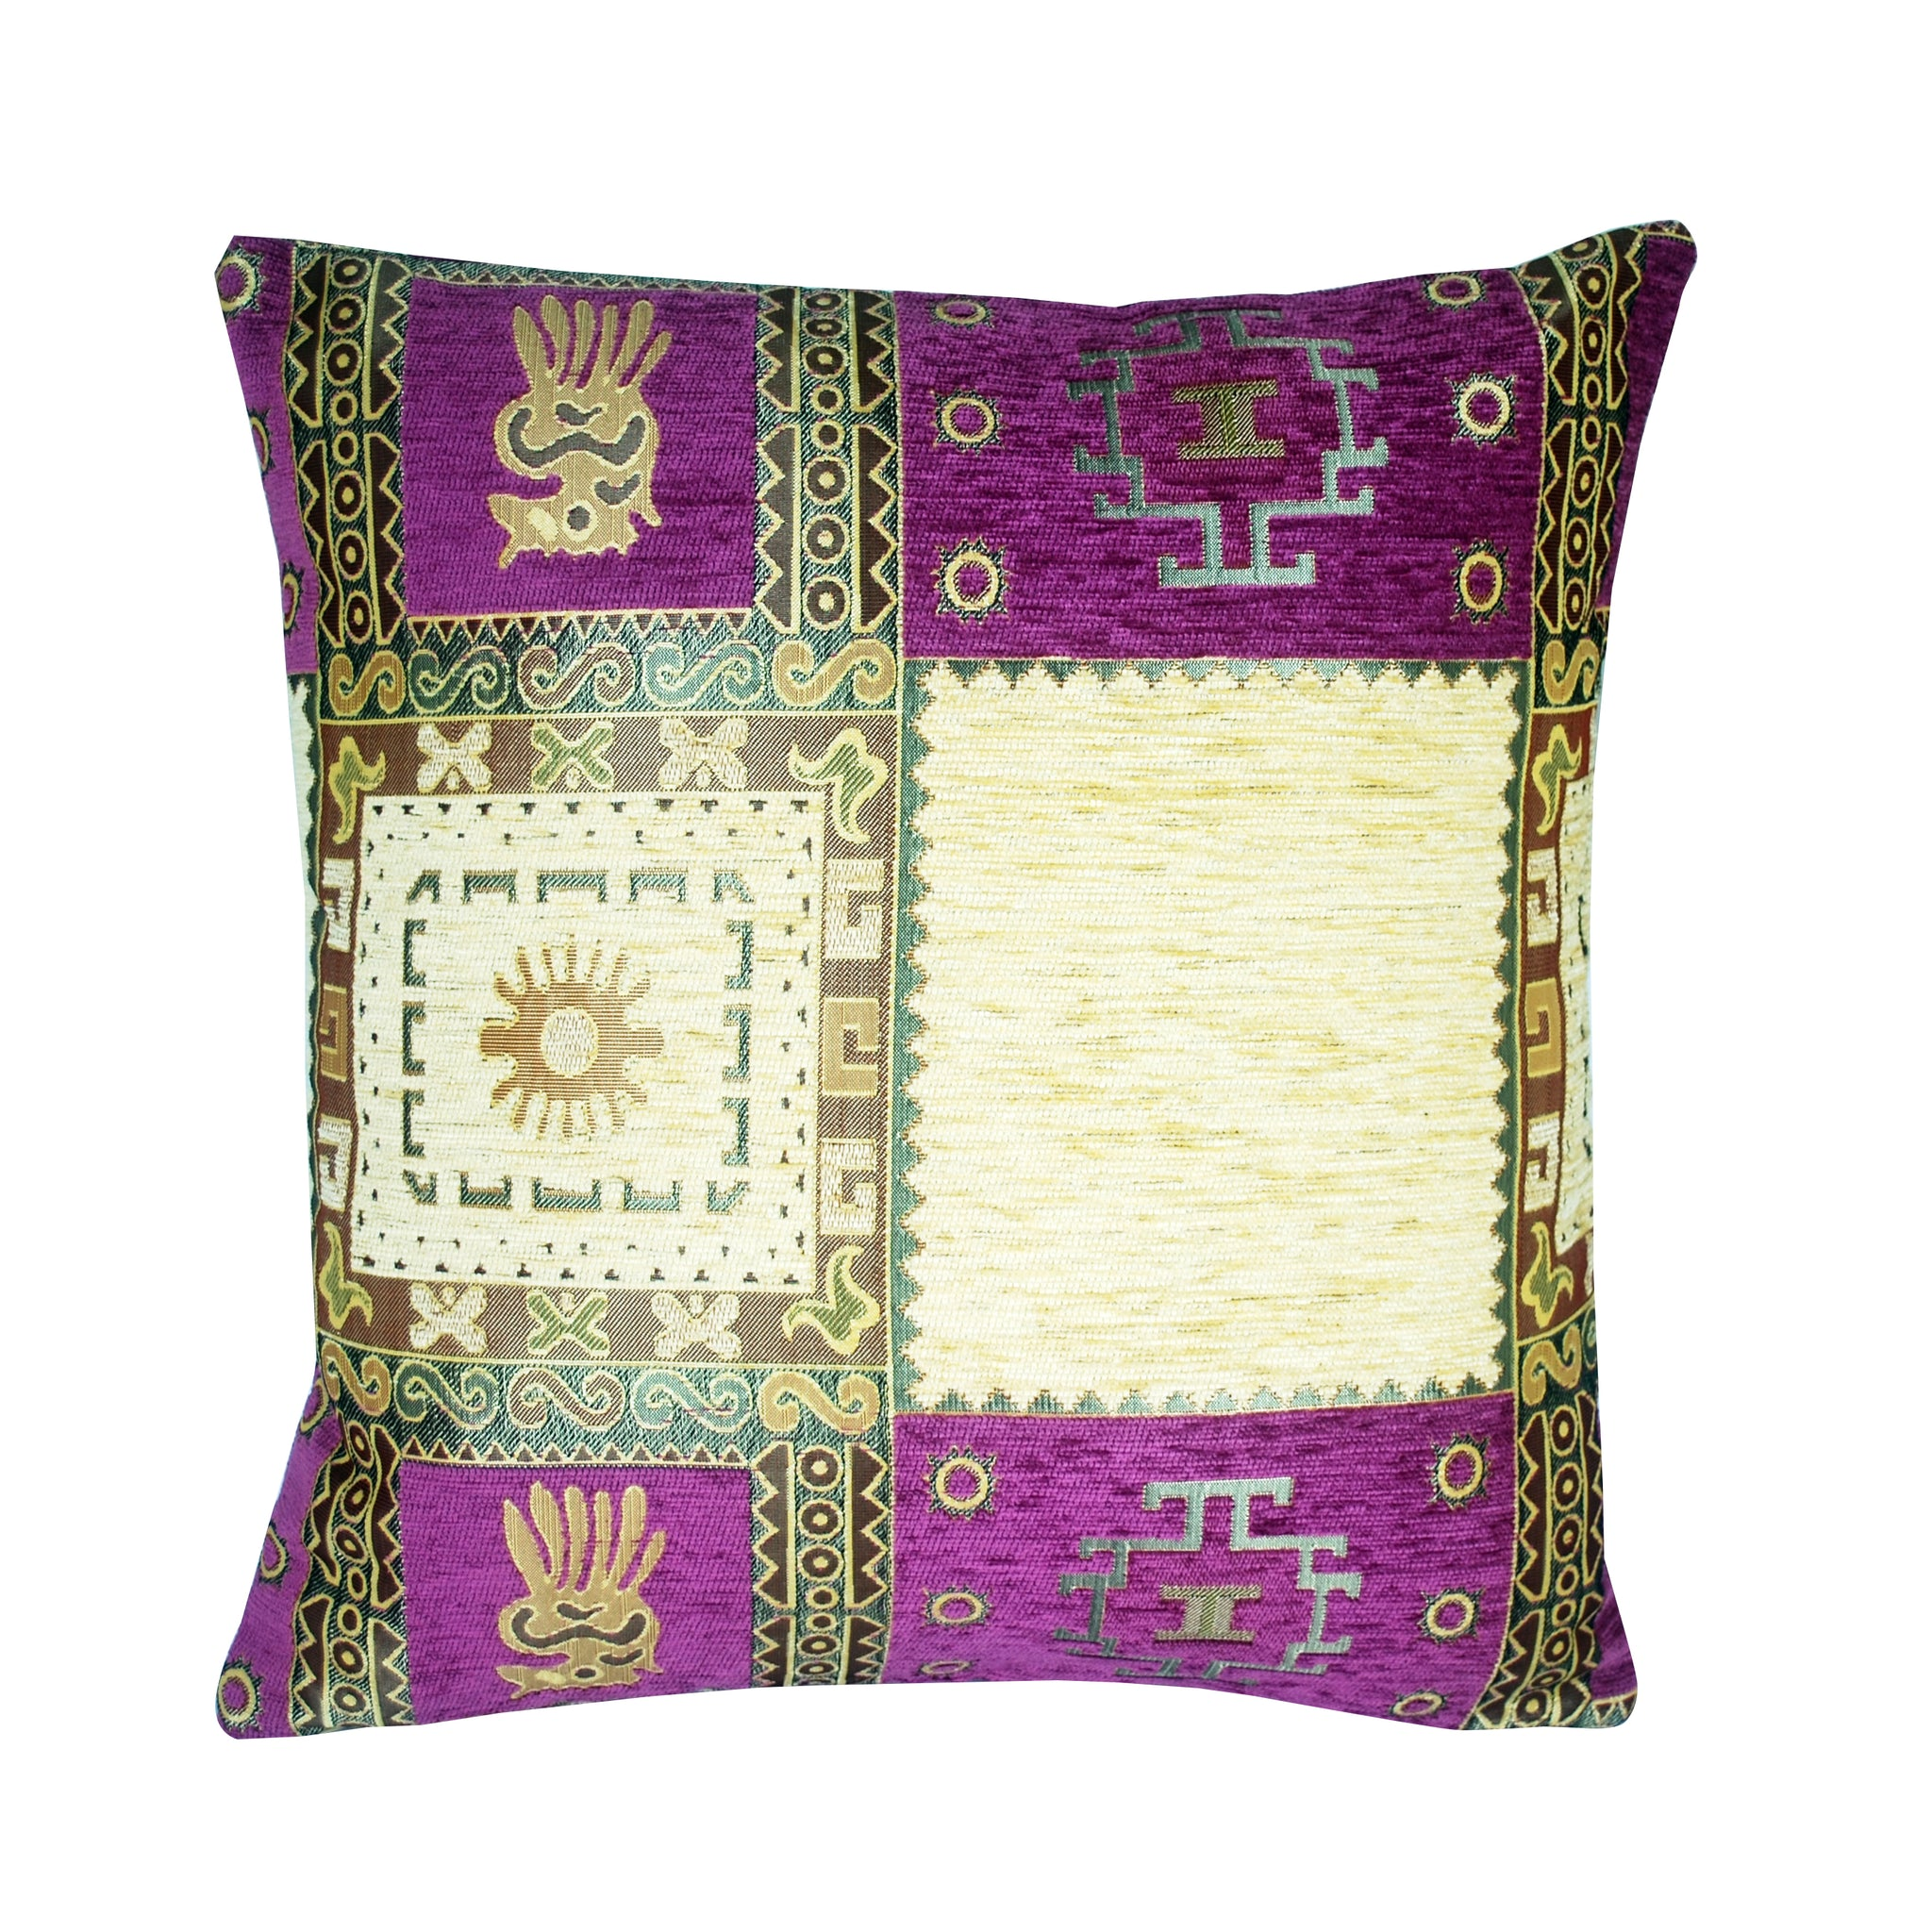 Traditional Turkish Handmade Cushion 42x42cm ET-M68 Purple